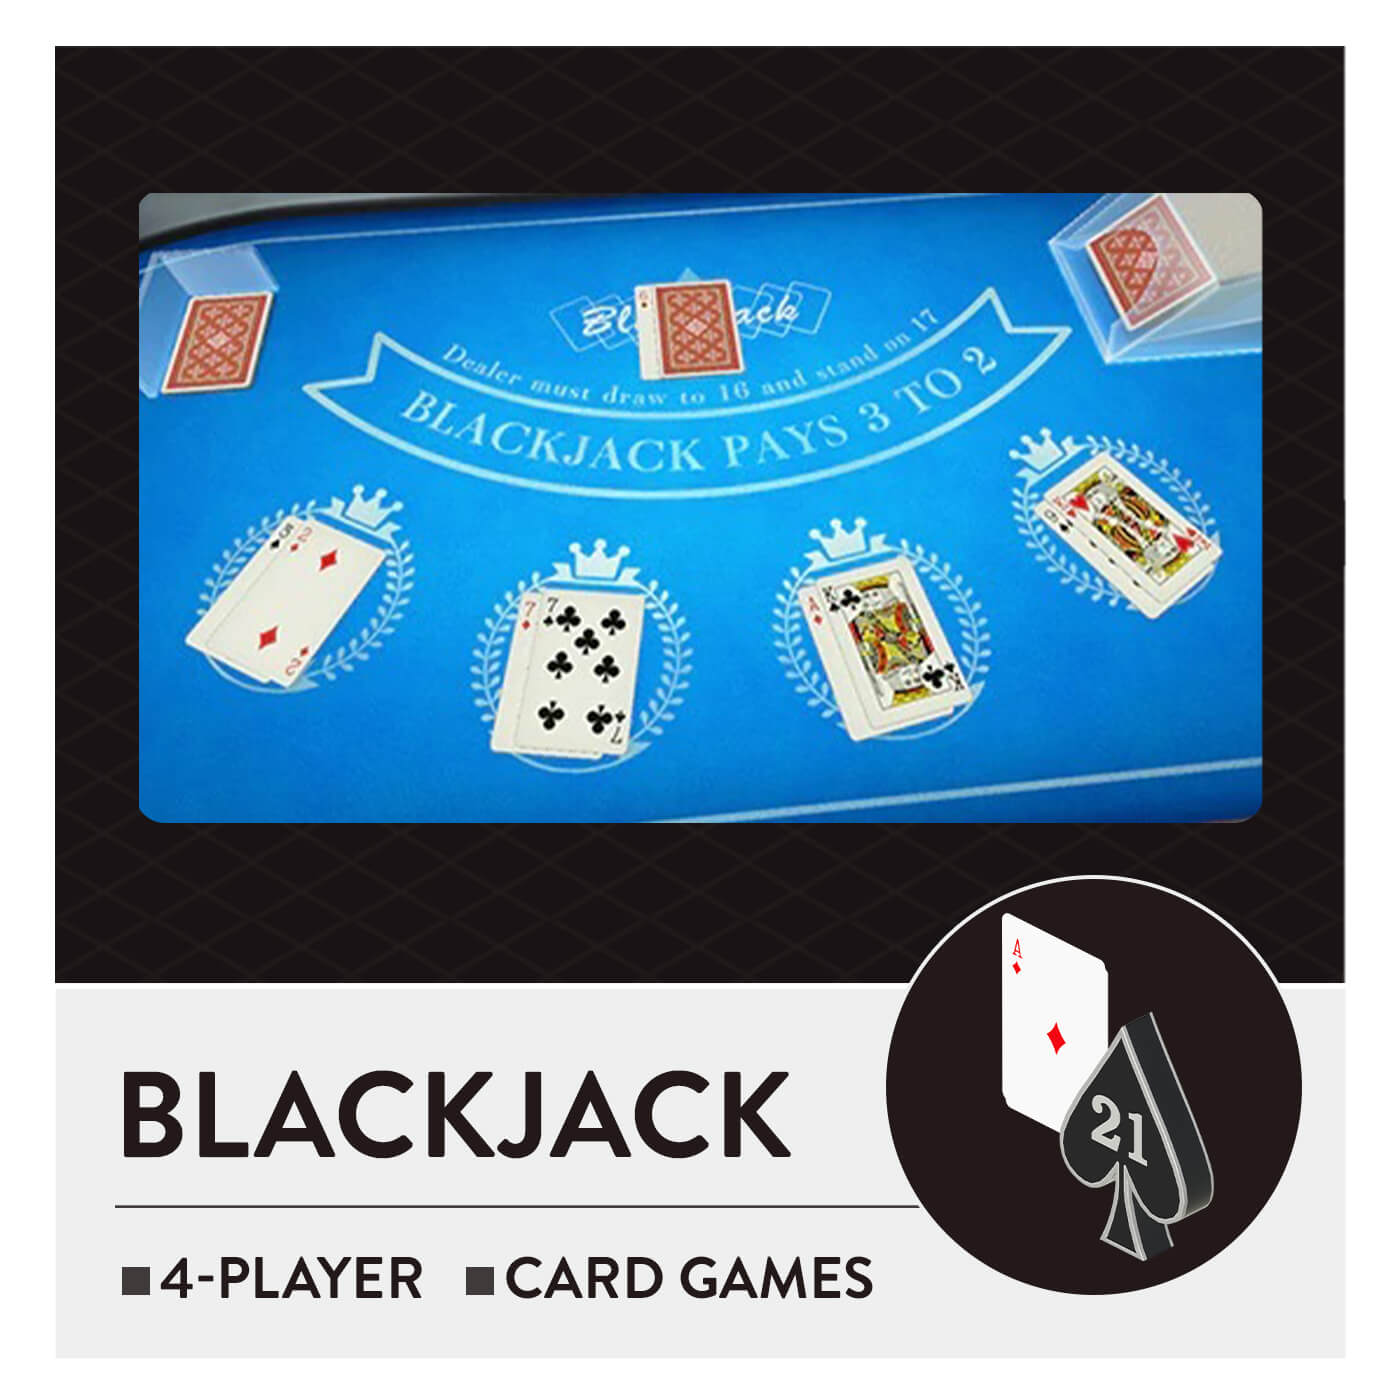 51 Worldwide Games - Blackjack